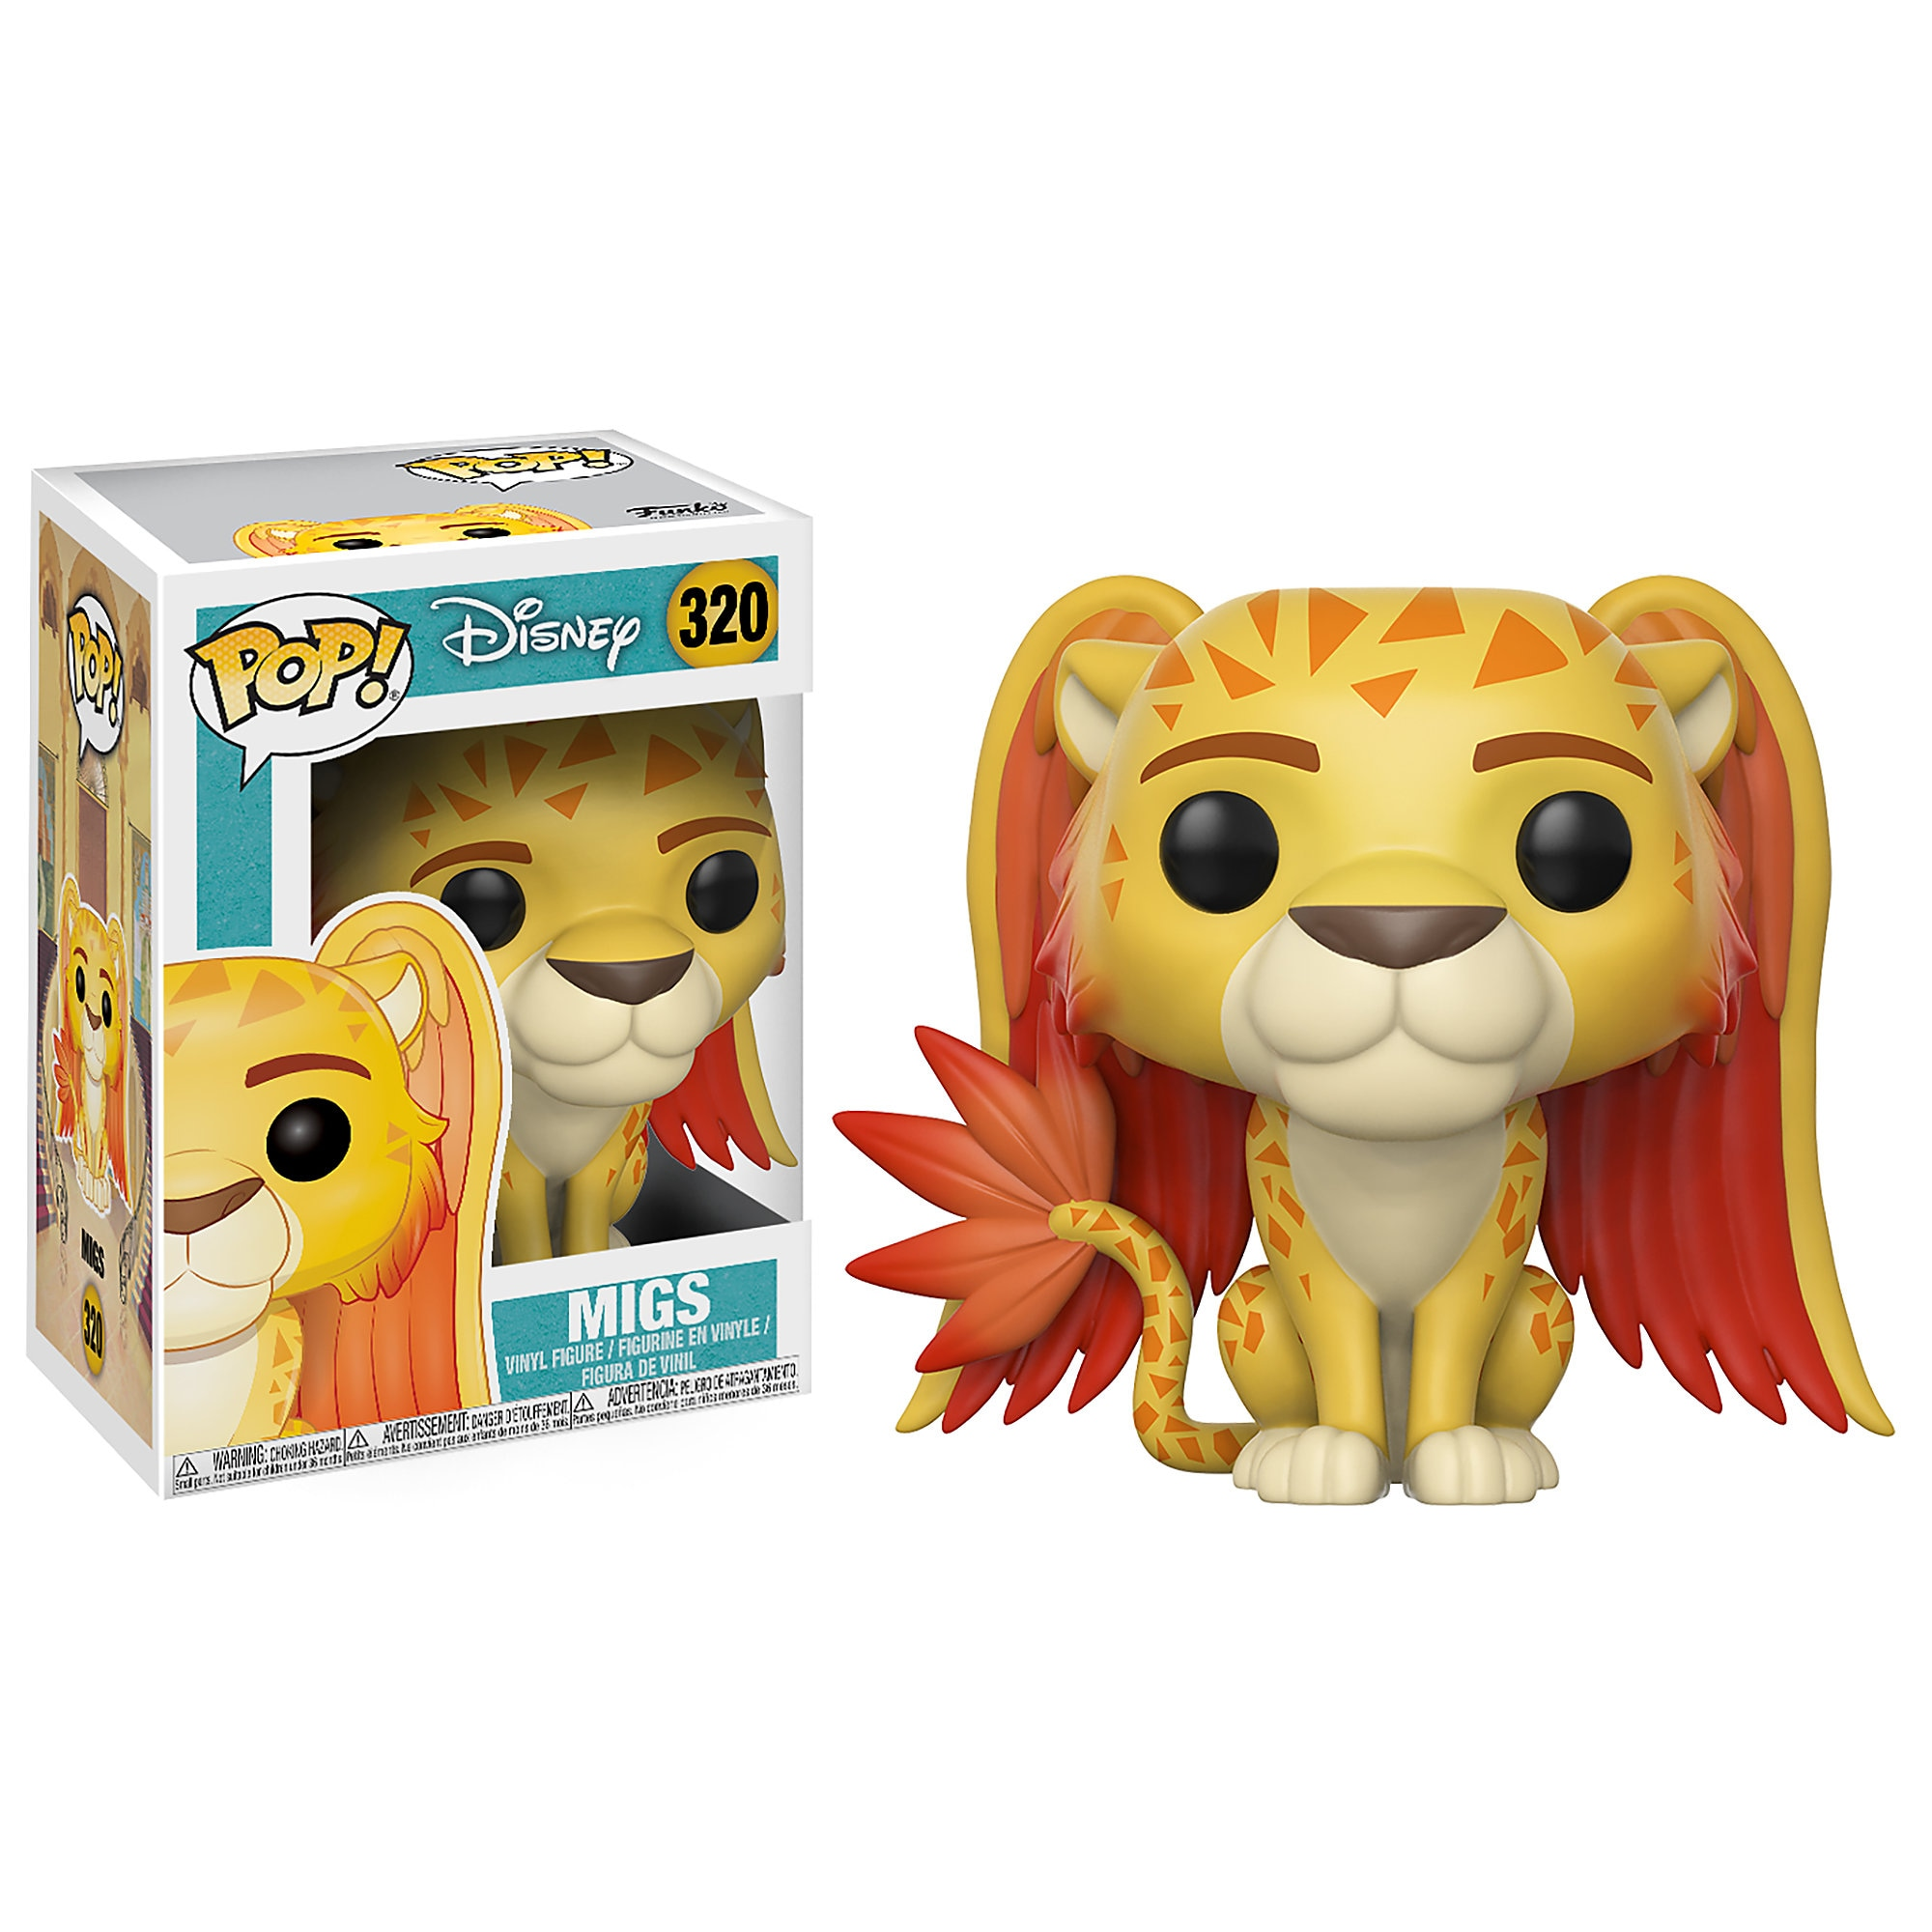 Migs Pop! Vinyl Figure - Elena of Avalor - Funko